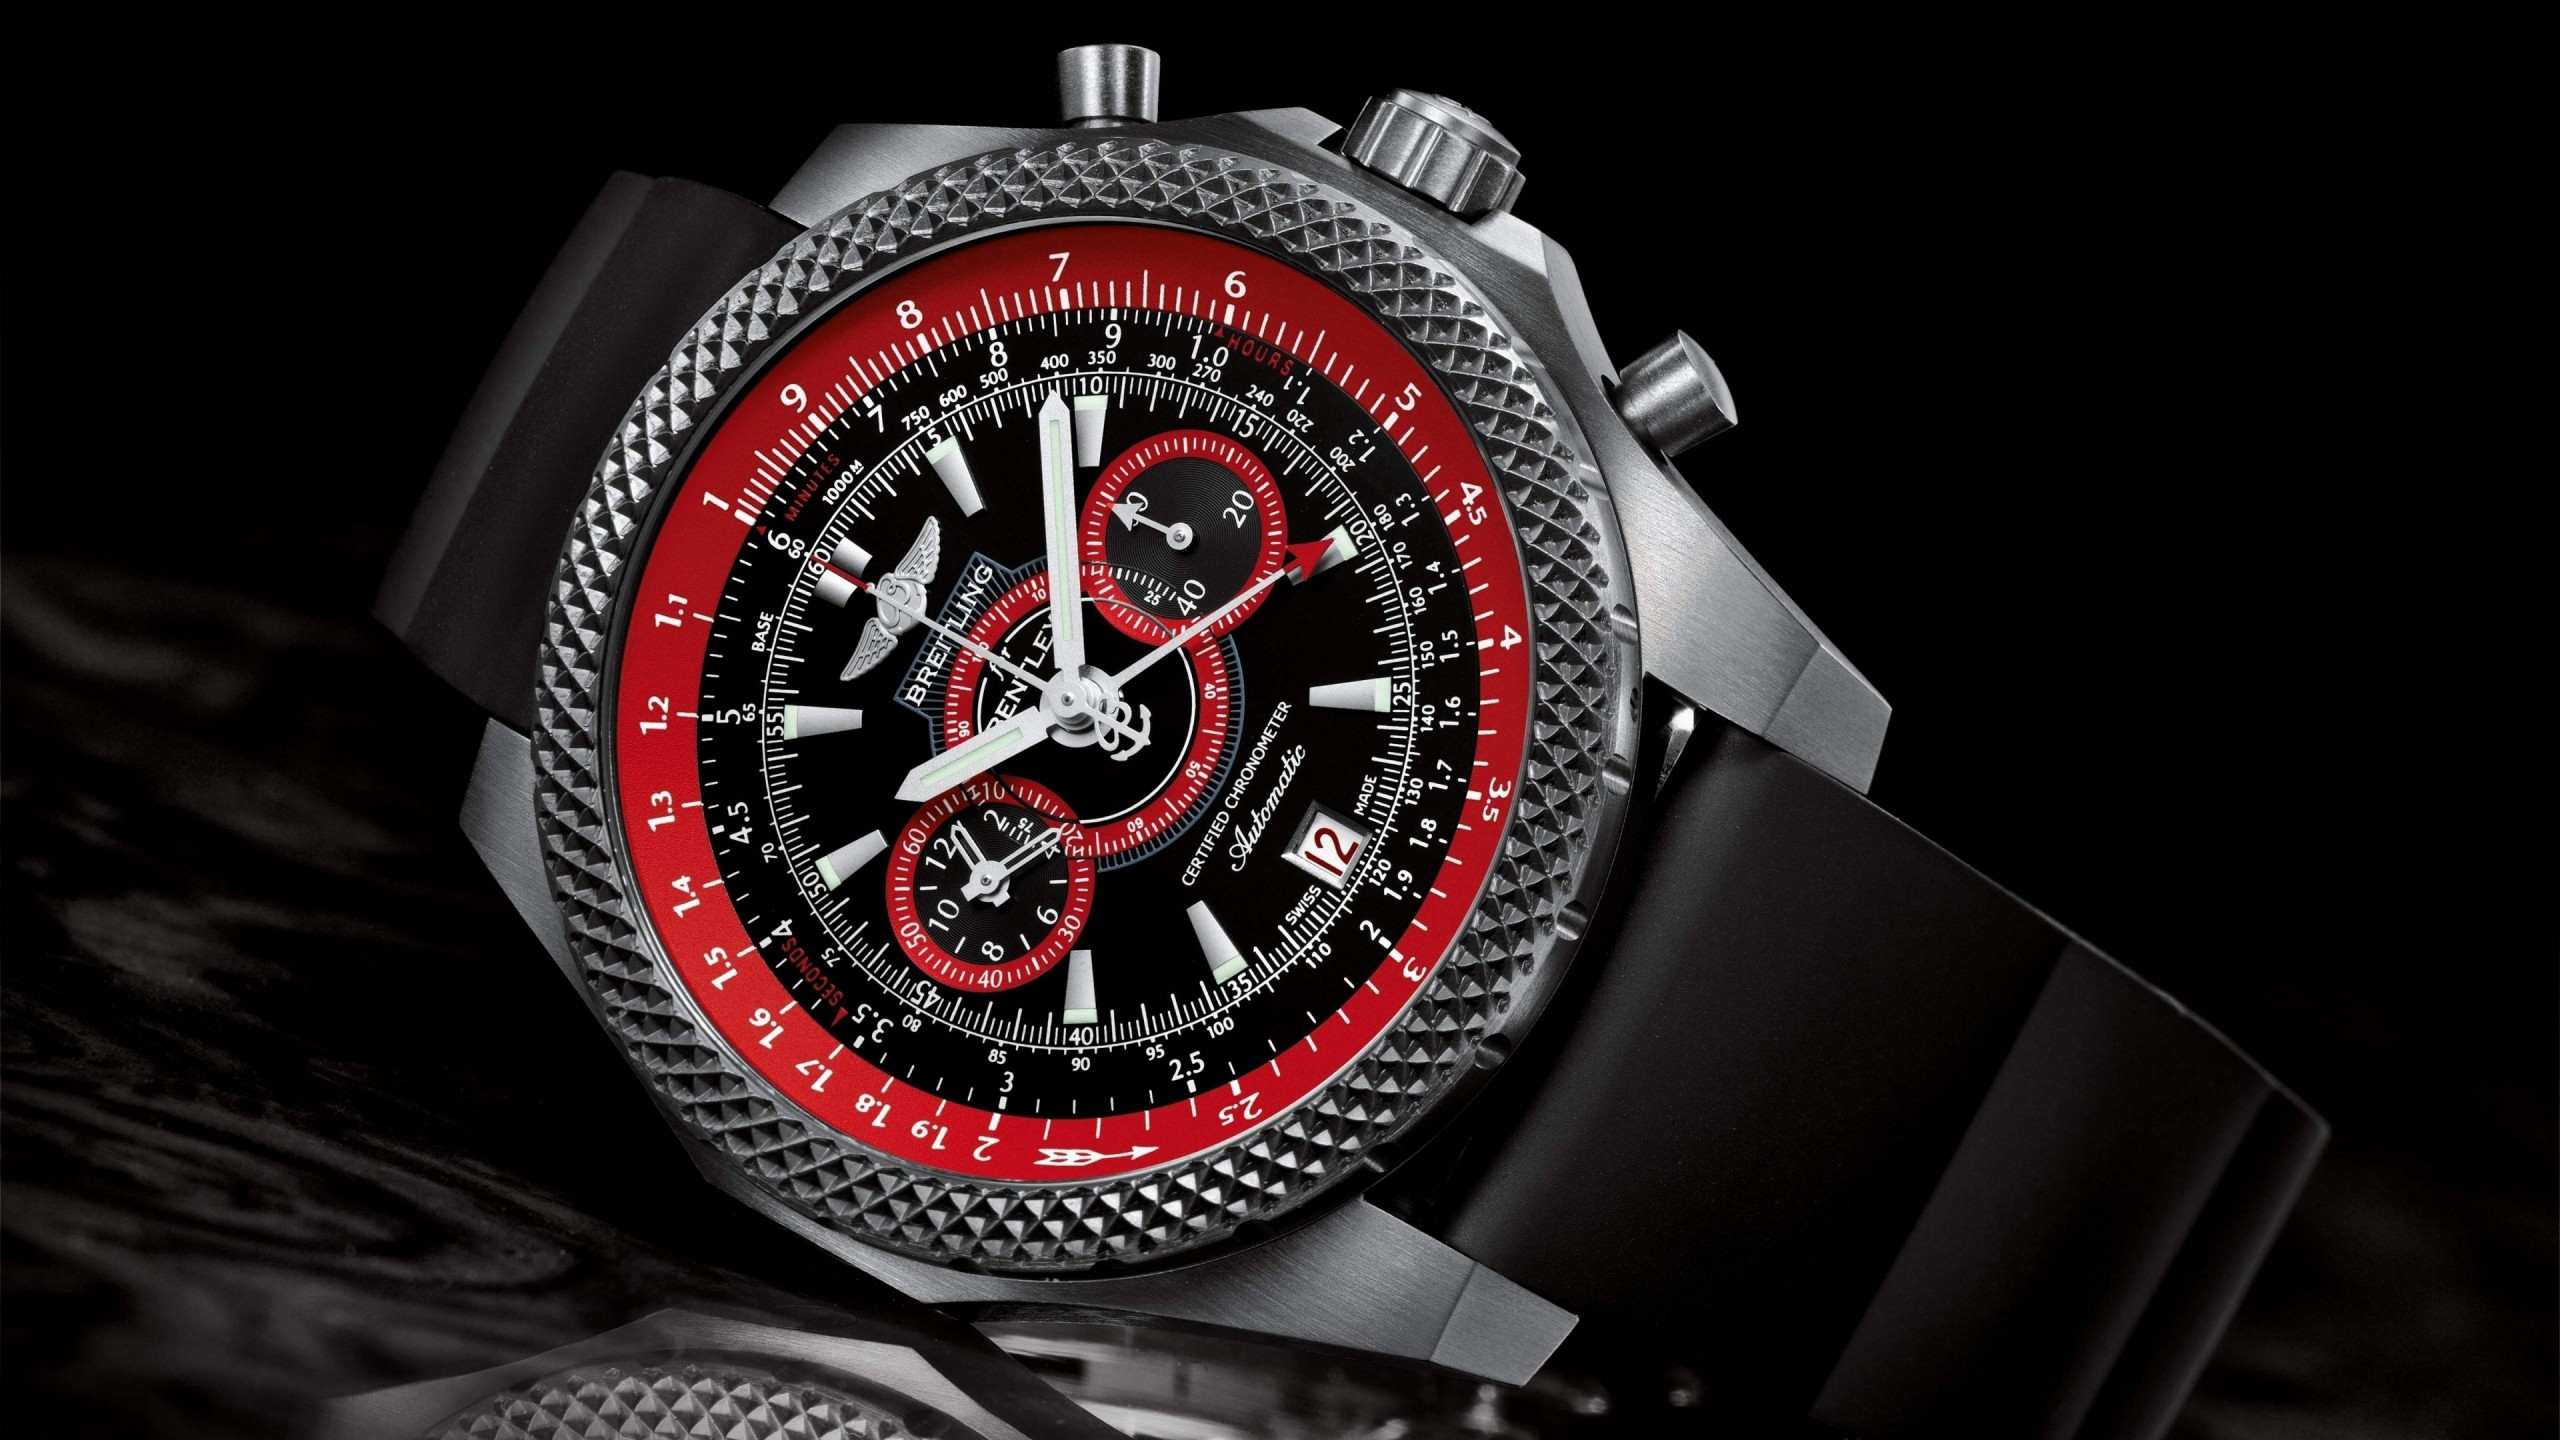 Breitling Watch Wallpaper for Social Media YouTube Channel Art